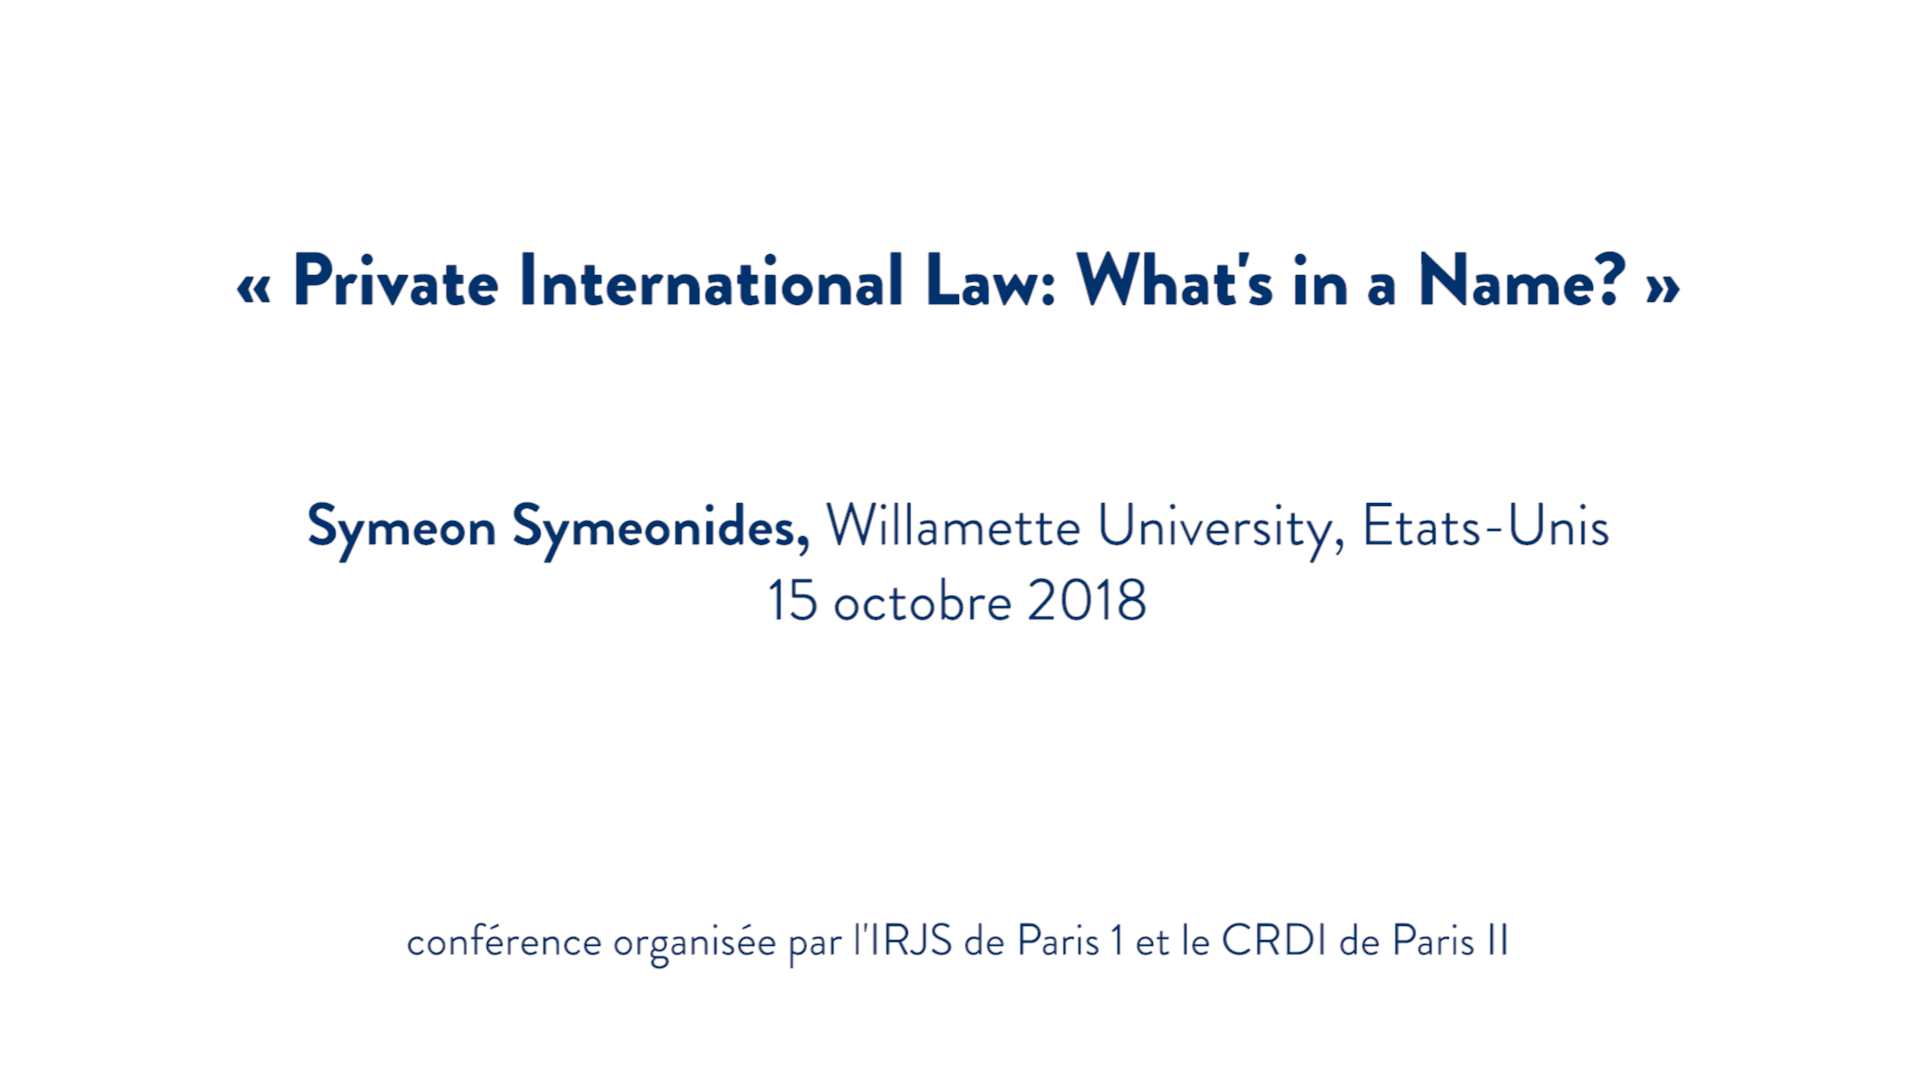 Private International Law: What's in a Name? - Symeon Symeonides